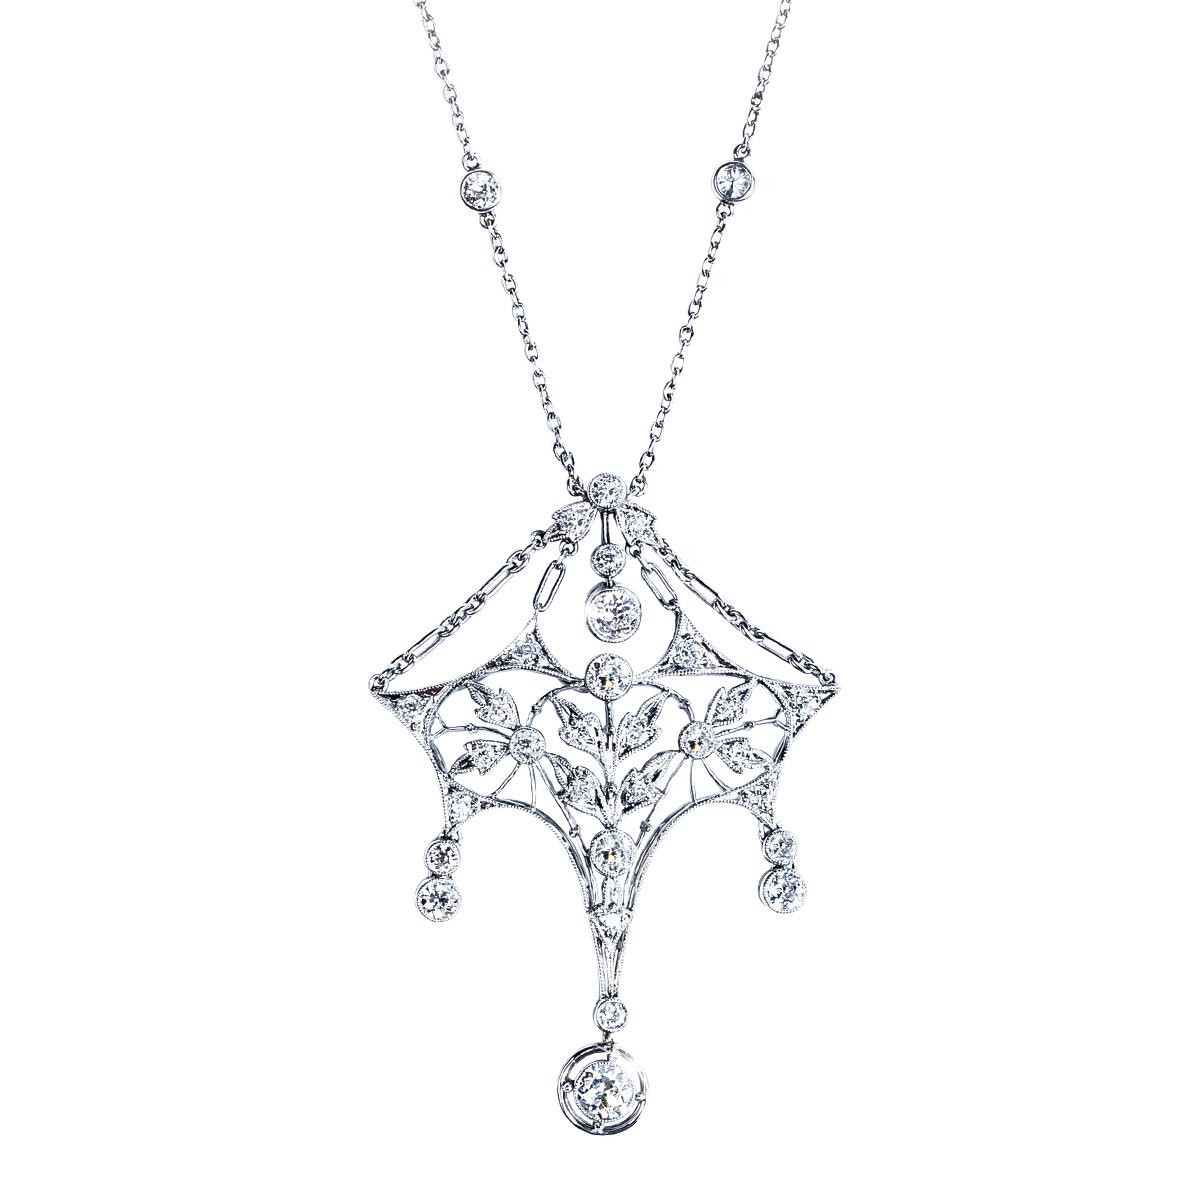 Antique Platinum Chandelier Diamond Pendant